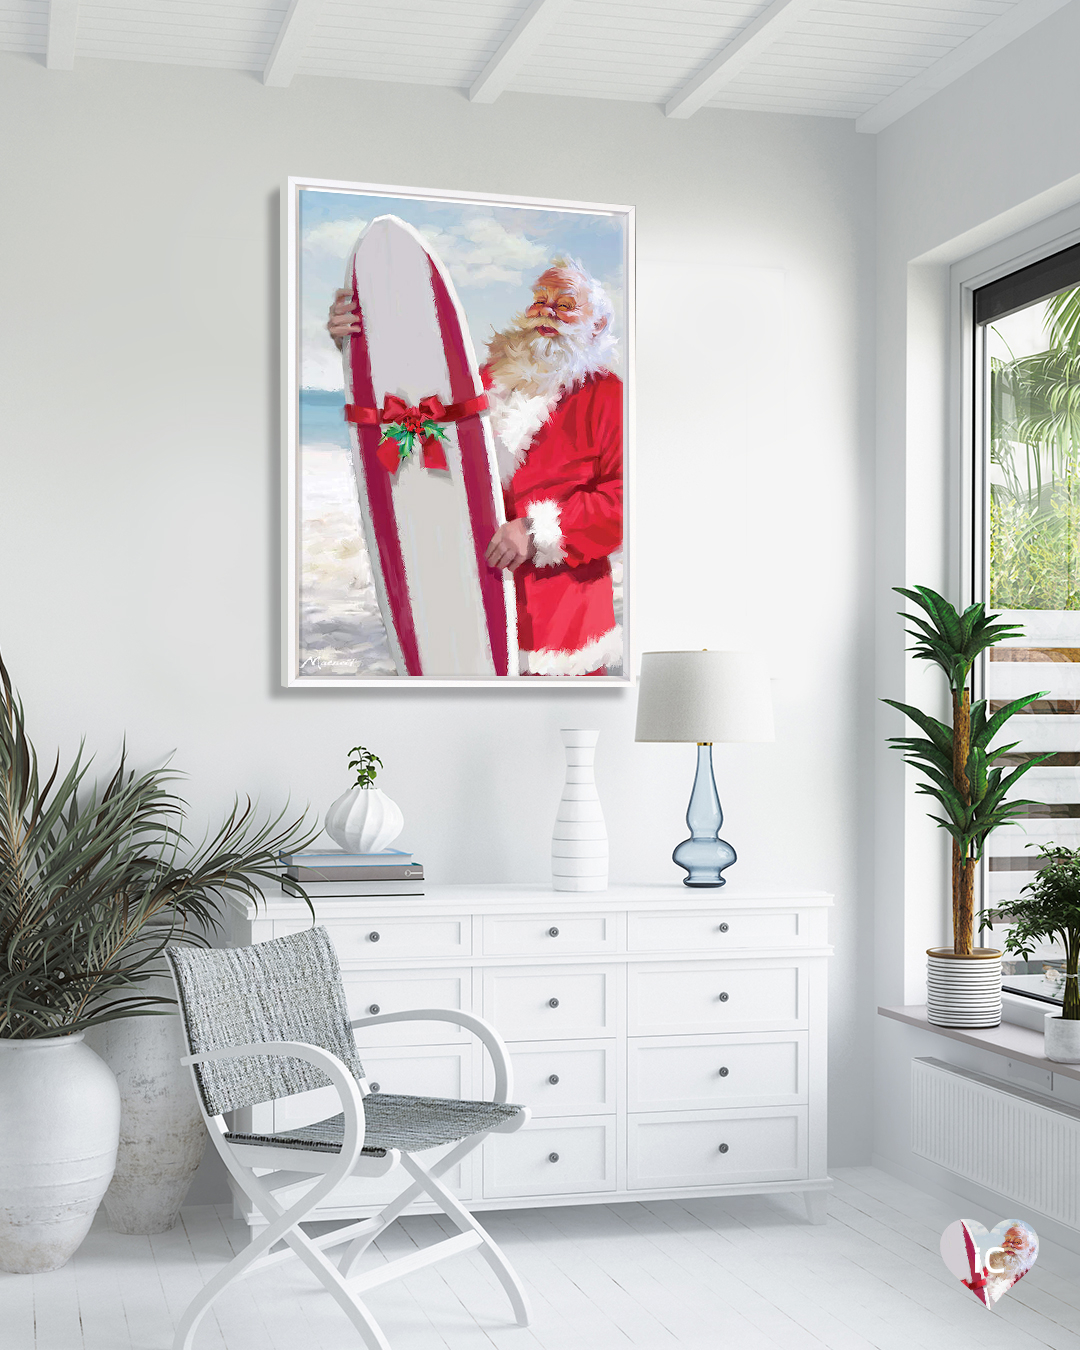 Print of Santa holding a red and white surfboard with a bow on it standing on the beach in a white coastal room with palm plants